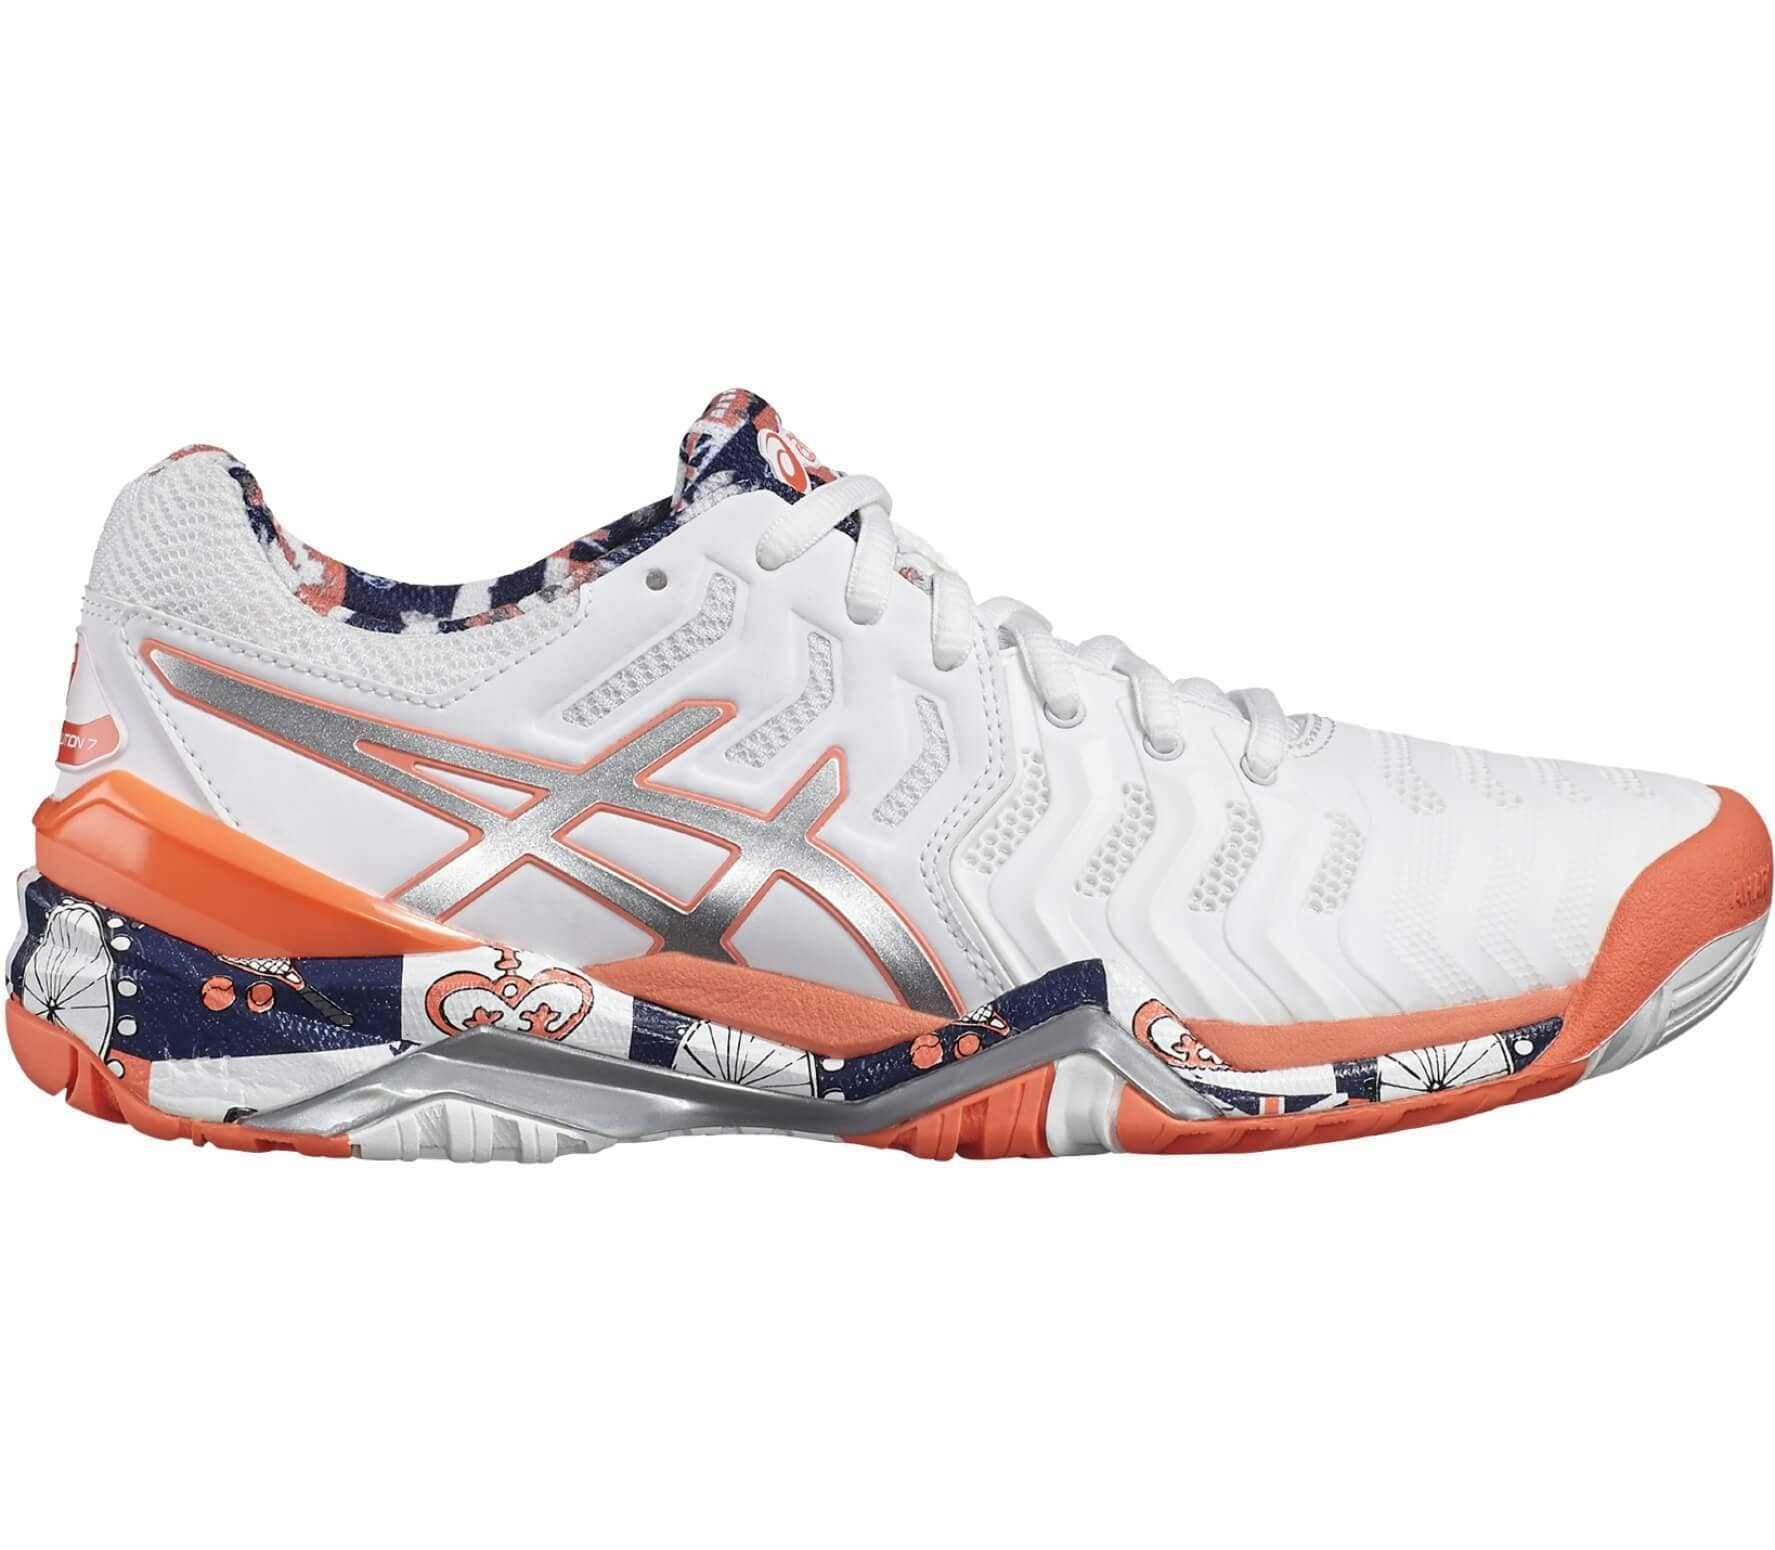 0b2b5198f41c Asics - Gel-Resolution 7 L.E. London women's tennis shoes (white/grey)